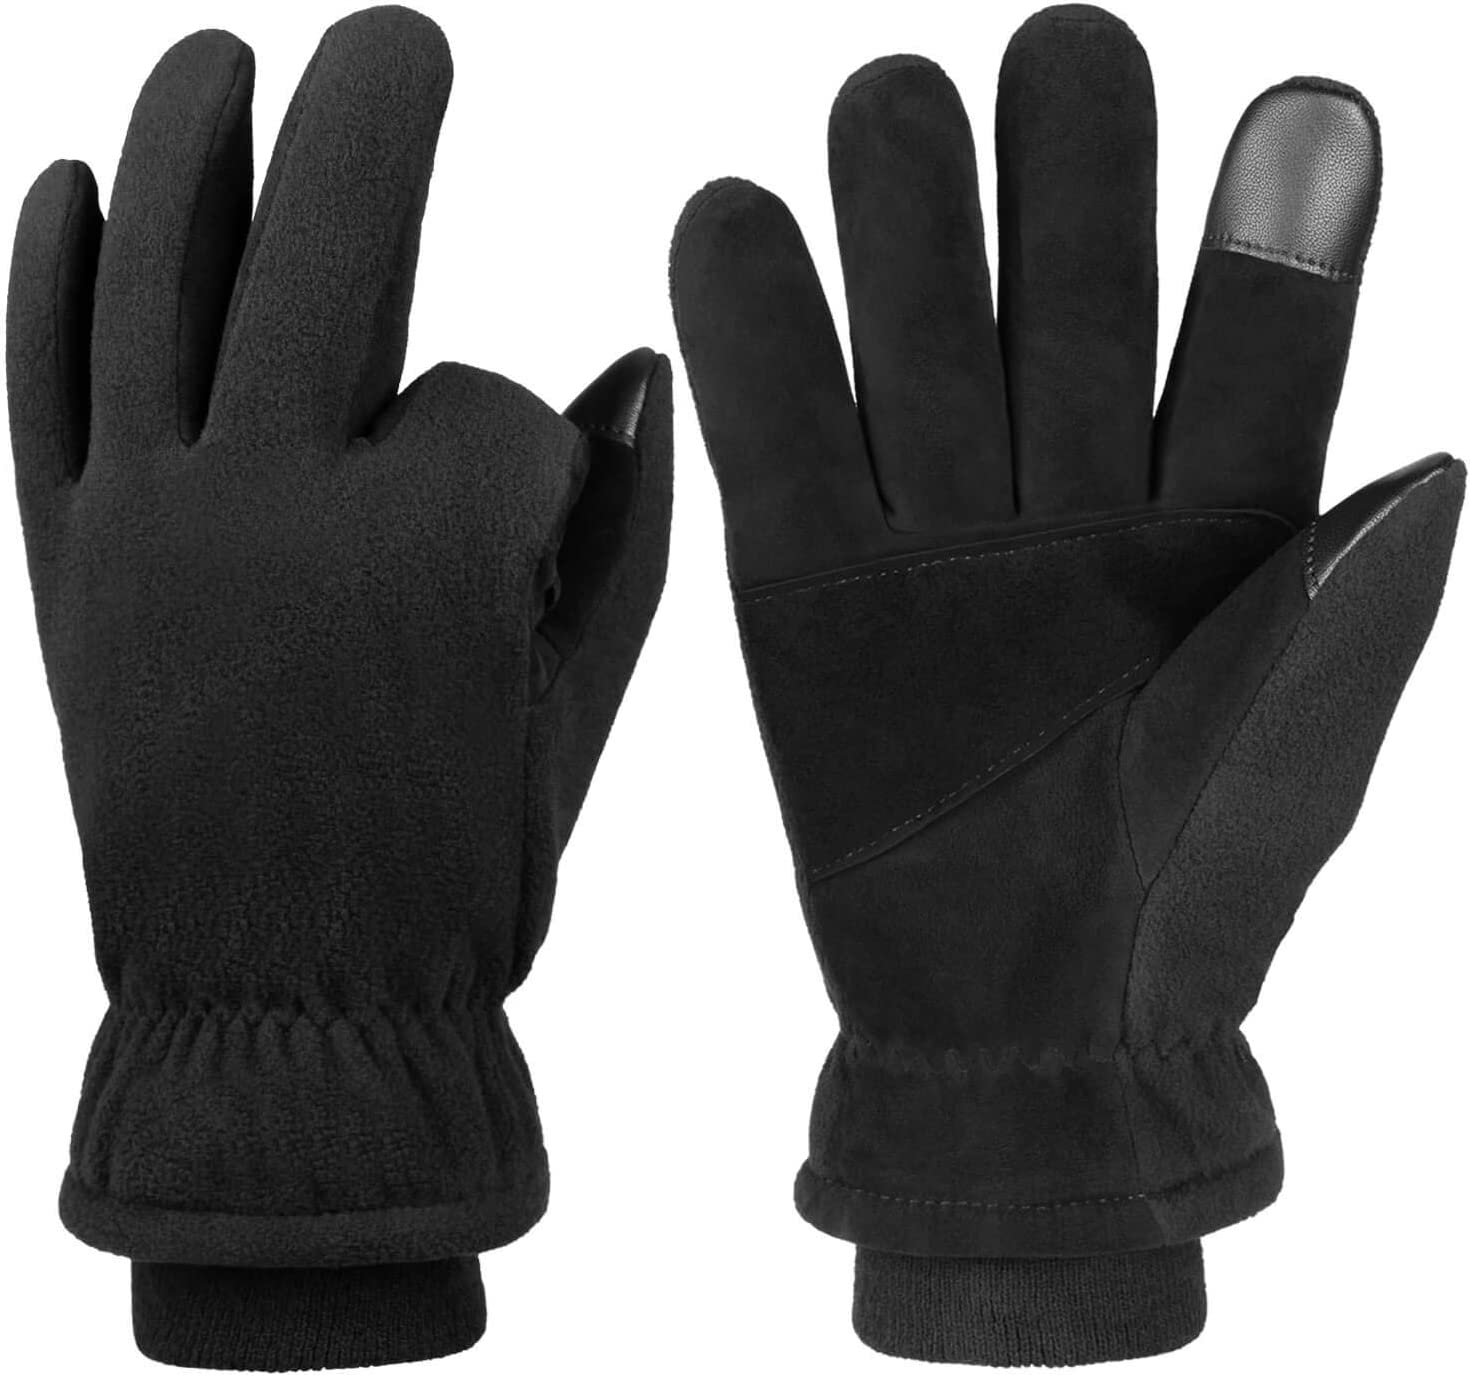 OZERO -30 ℉ Winter Gloves...